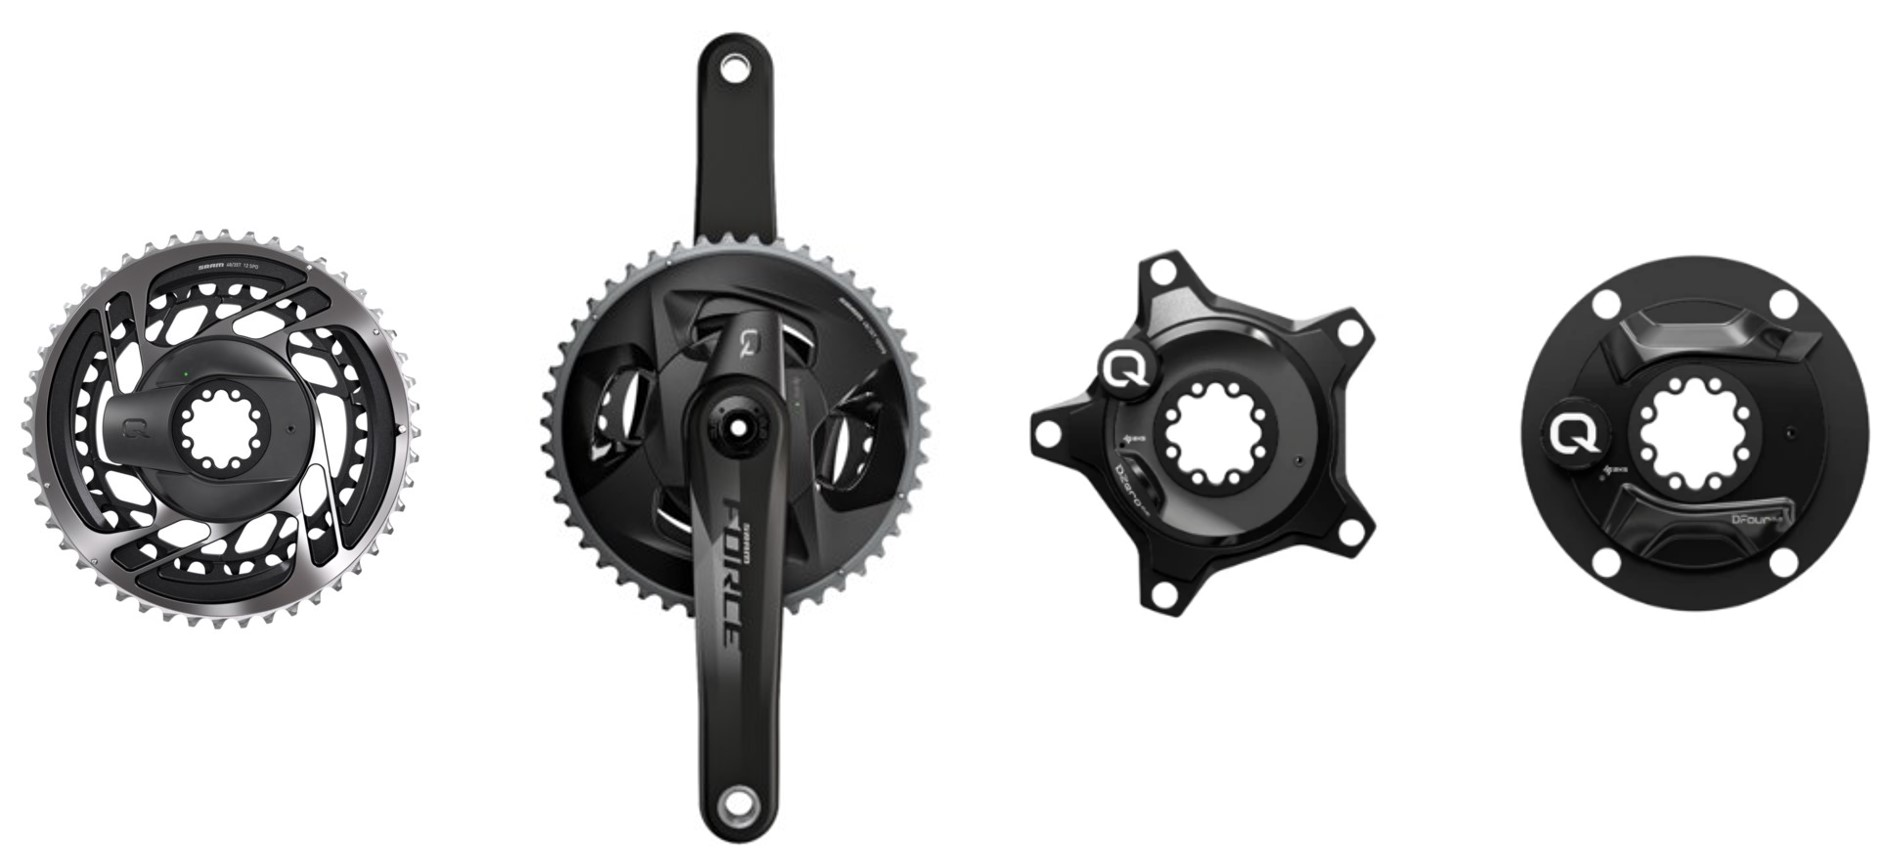 Quarq power meters